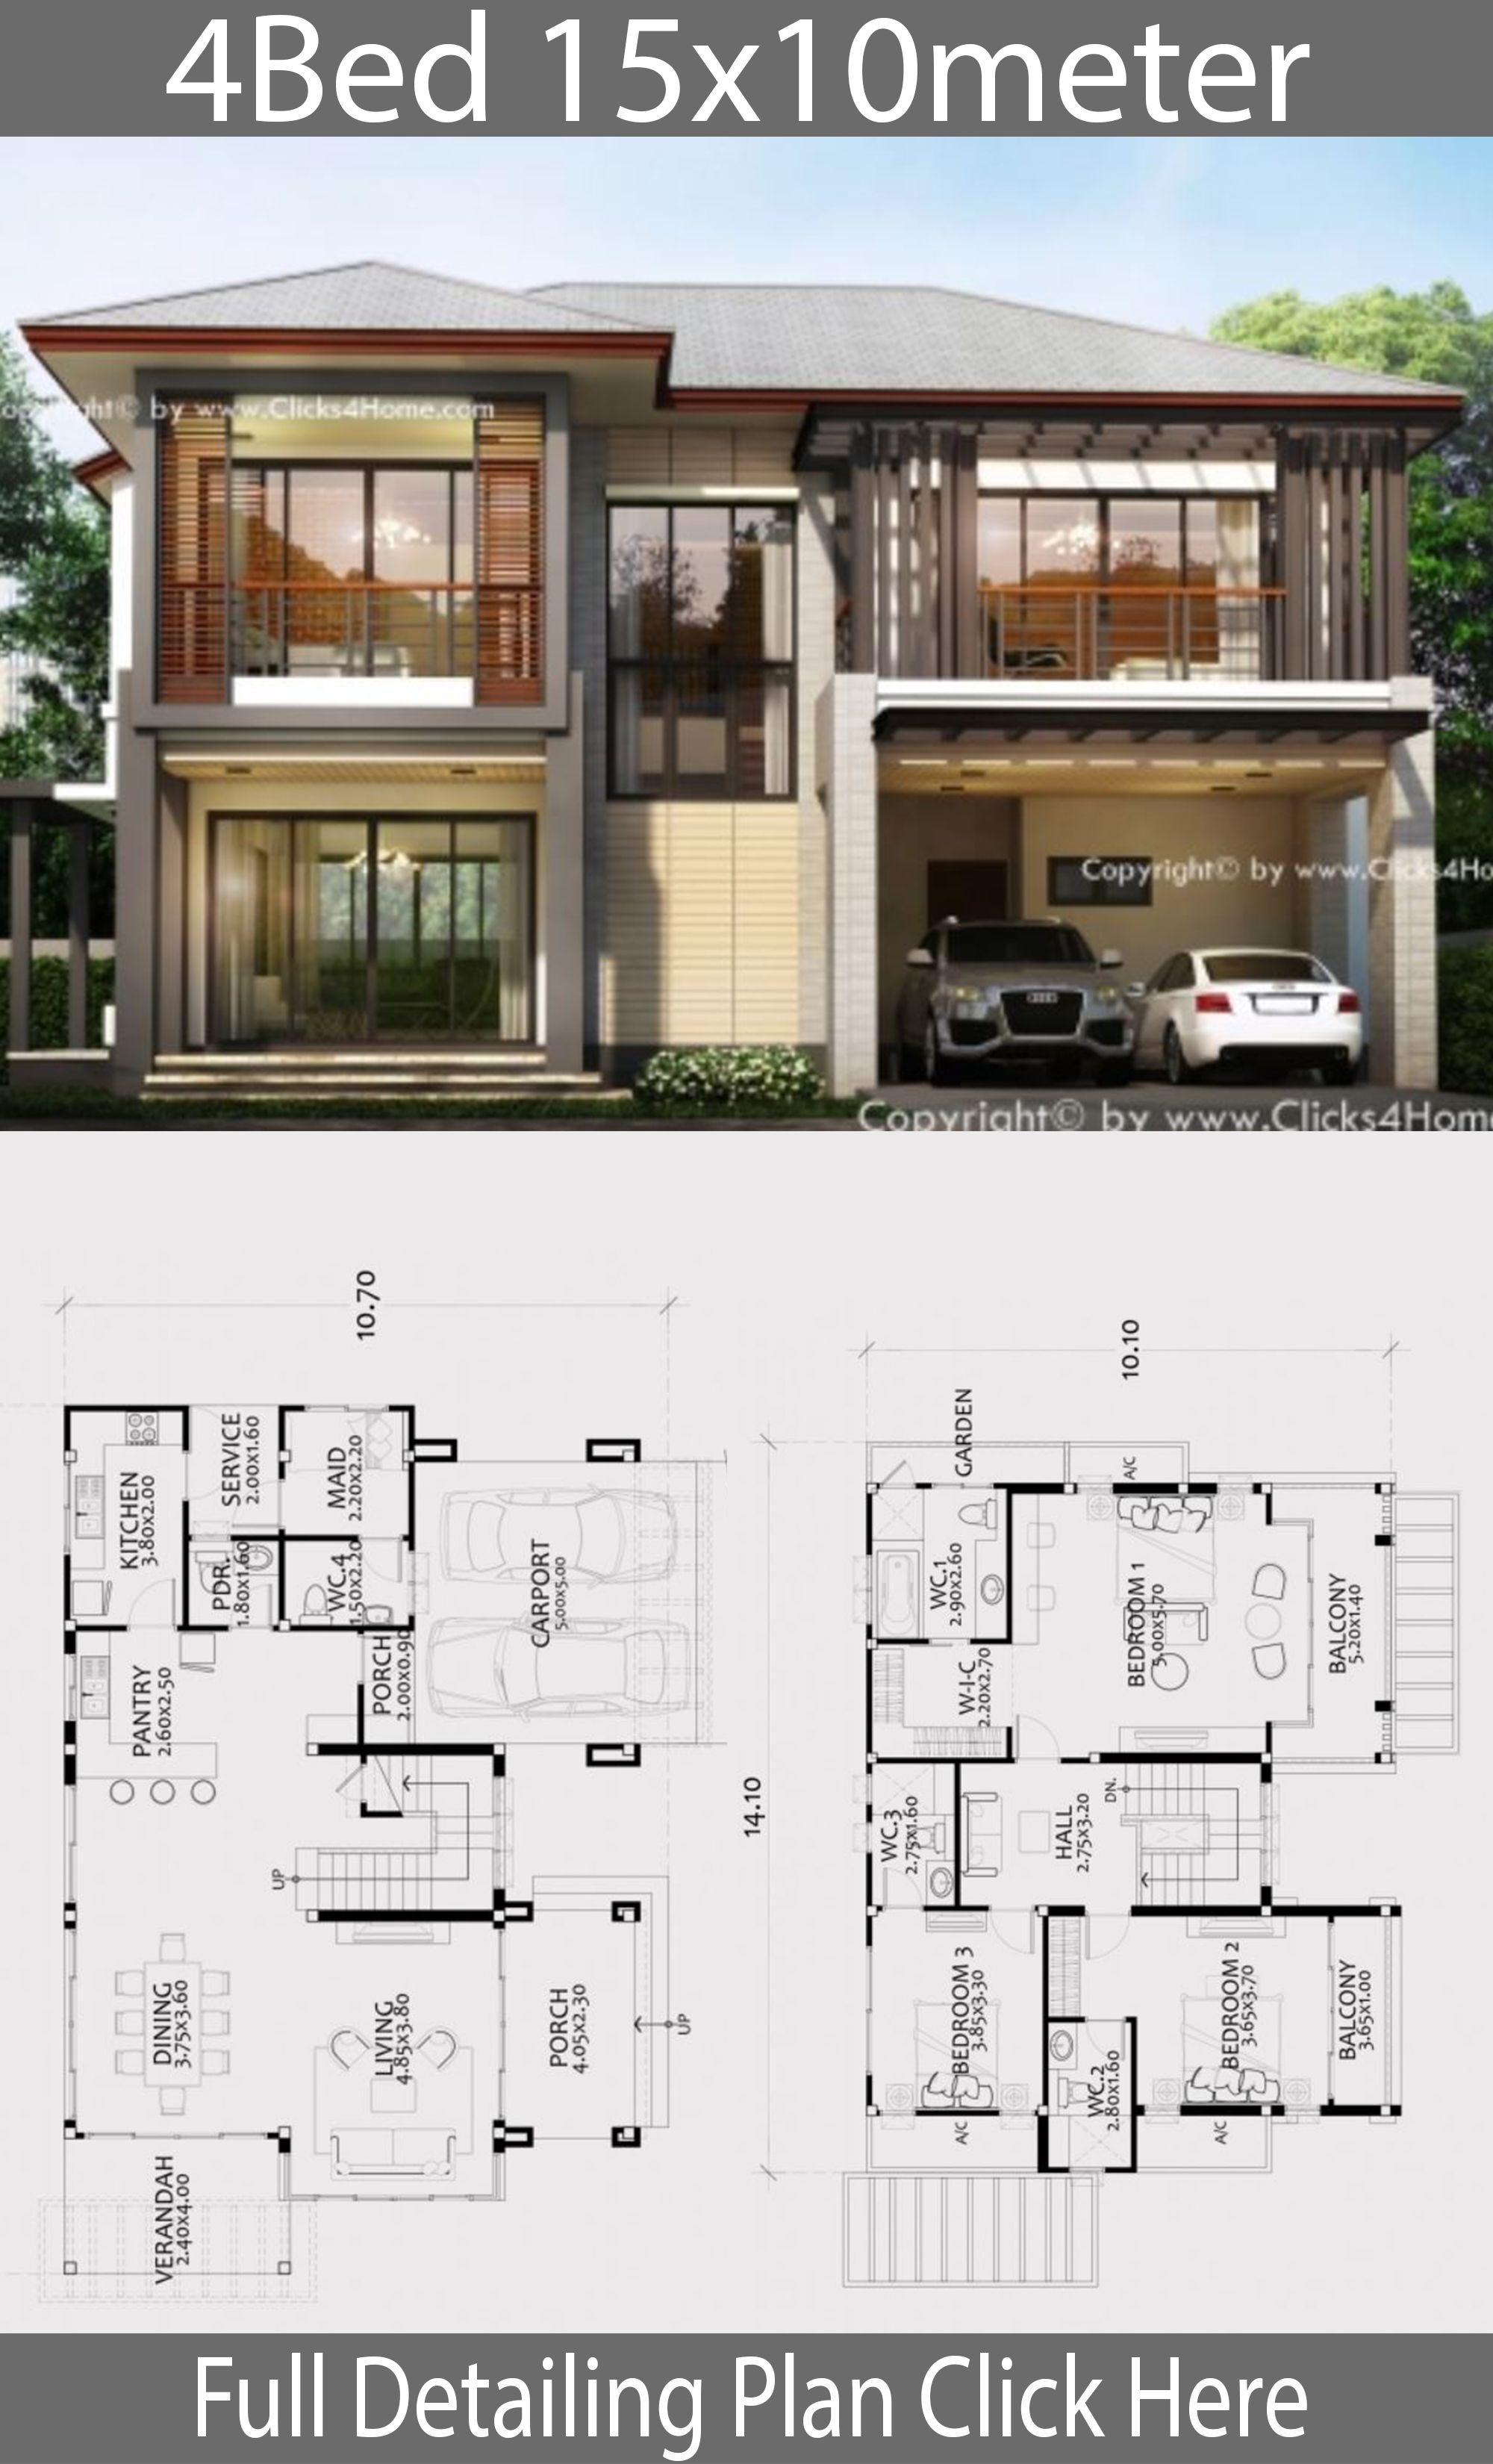 Home Design Plan 15x10m With 4 Bedroom With Images Architectural House Plans House Plan Gallery Home Building Design